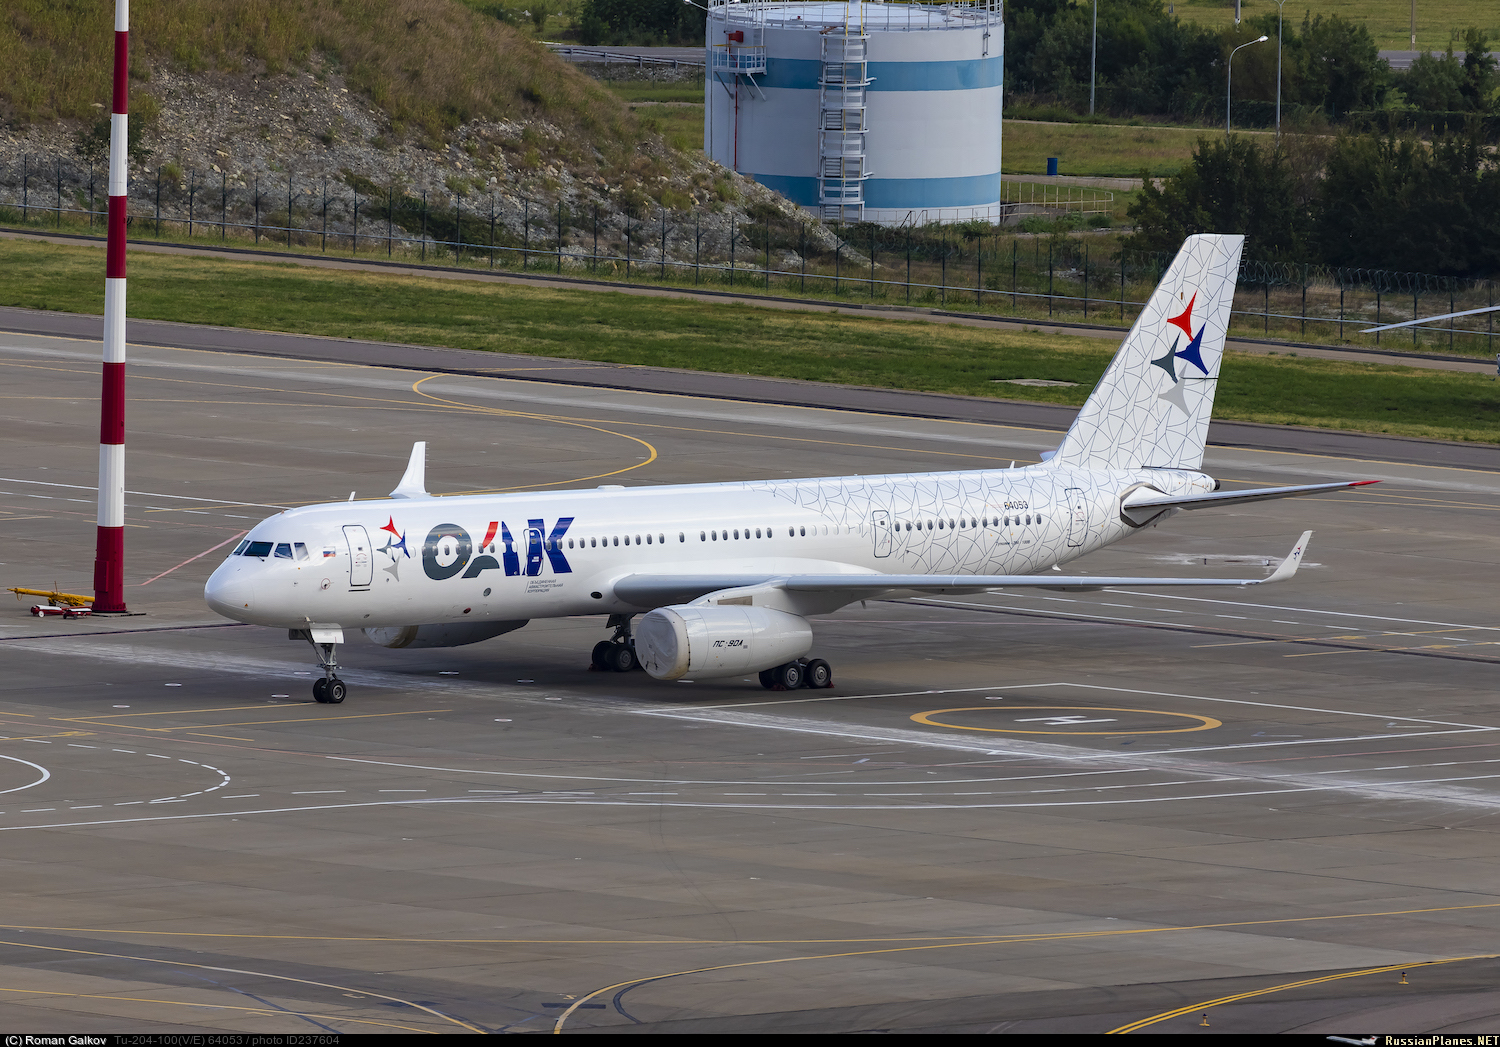 The aircraft Tu-204-300-100 became the representative board of OAK 64053, number, aircraft, Tu204300100, registration, Tu204300, against, contract, variant, built, Federation, aircraft, entered, Russia, affairs, President, Ulyanovsk, originally, Russian, serial